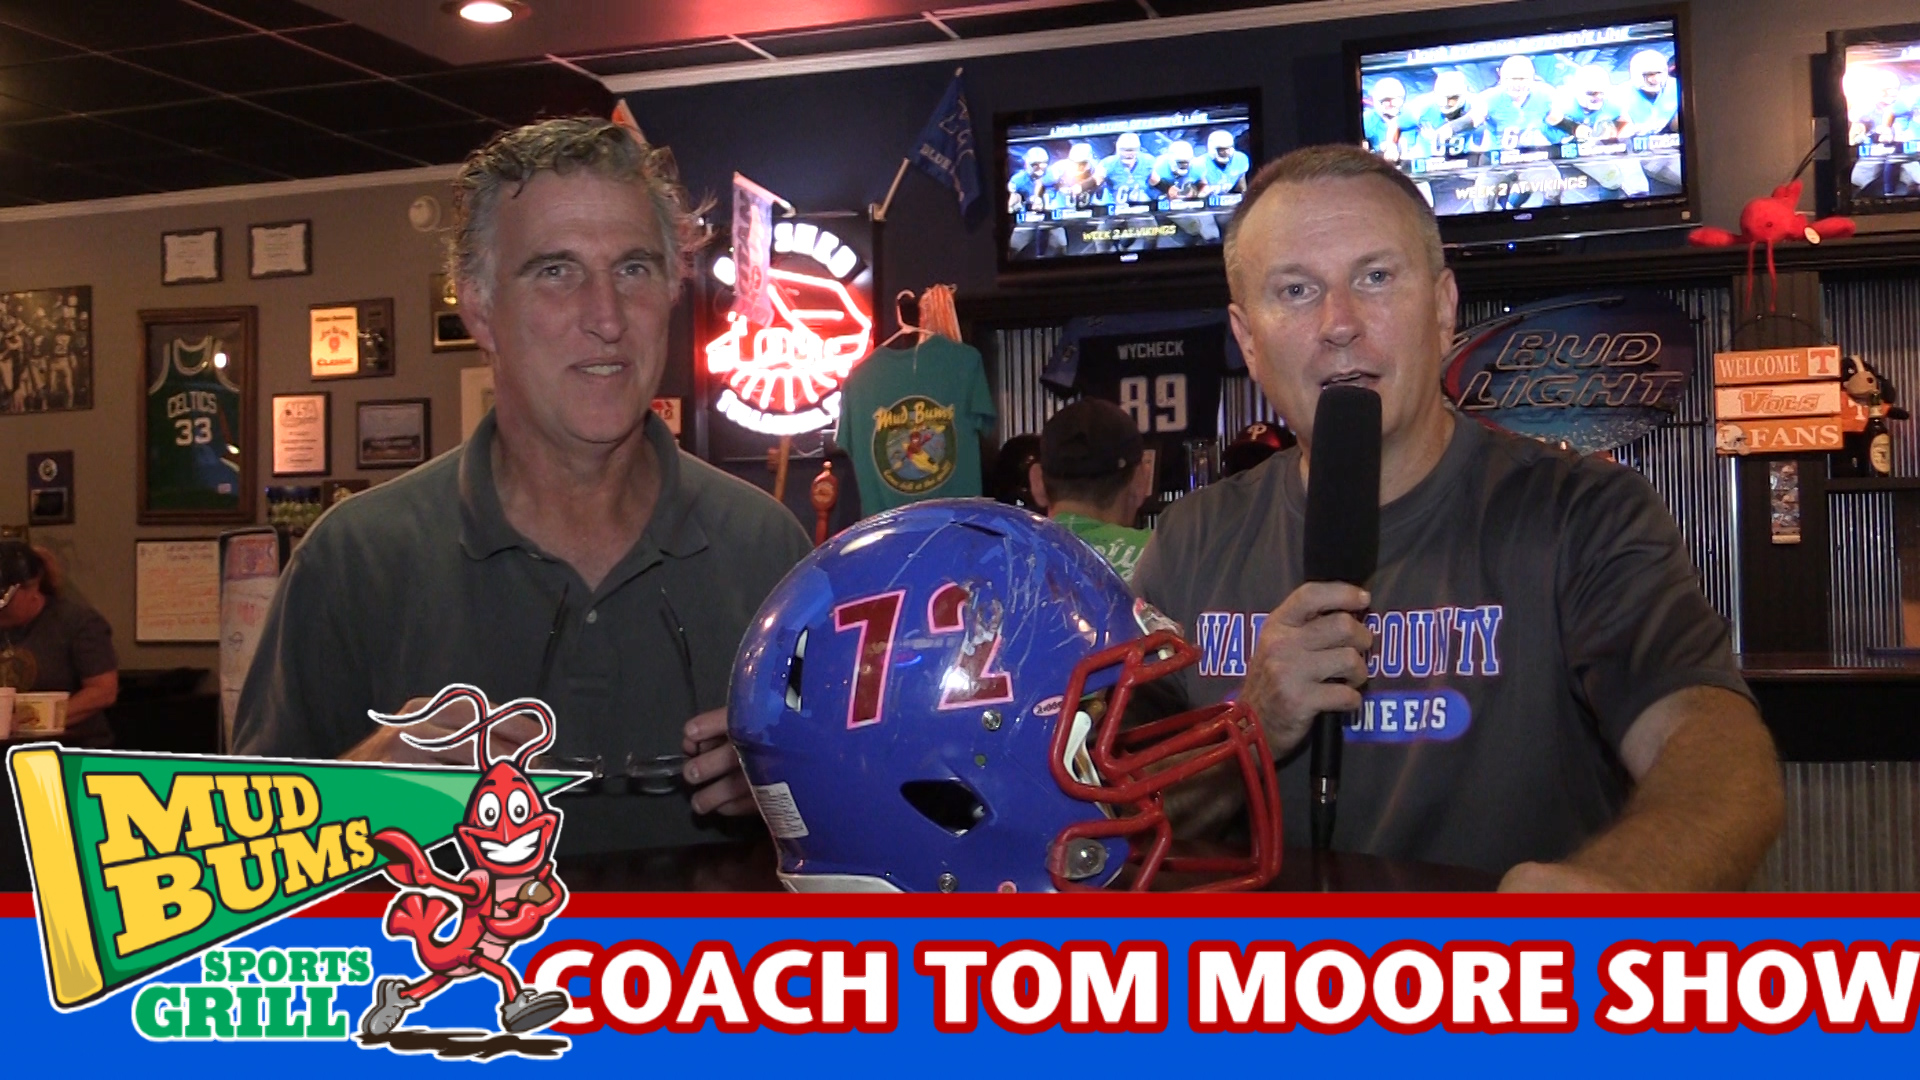 Coach Tom Moore discusses the Oakland game